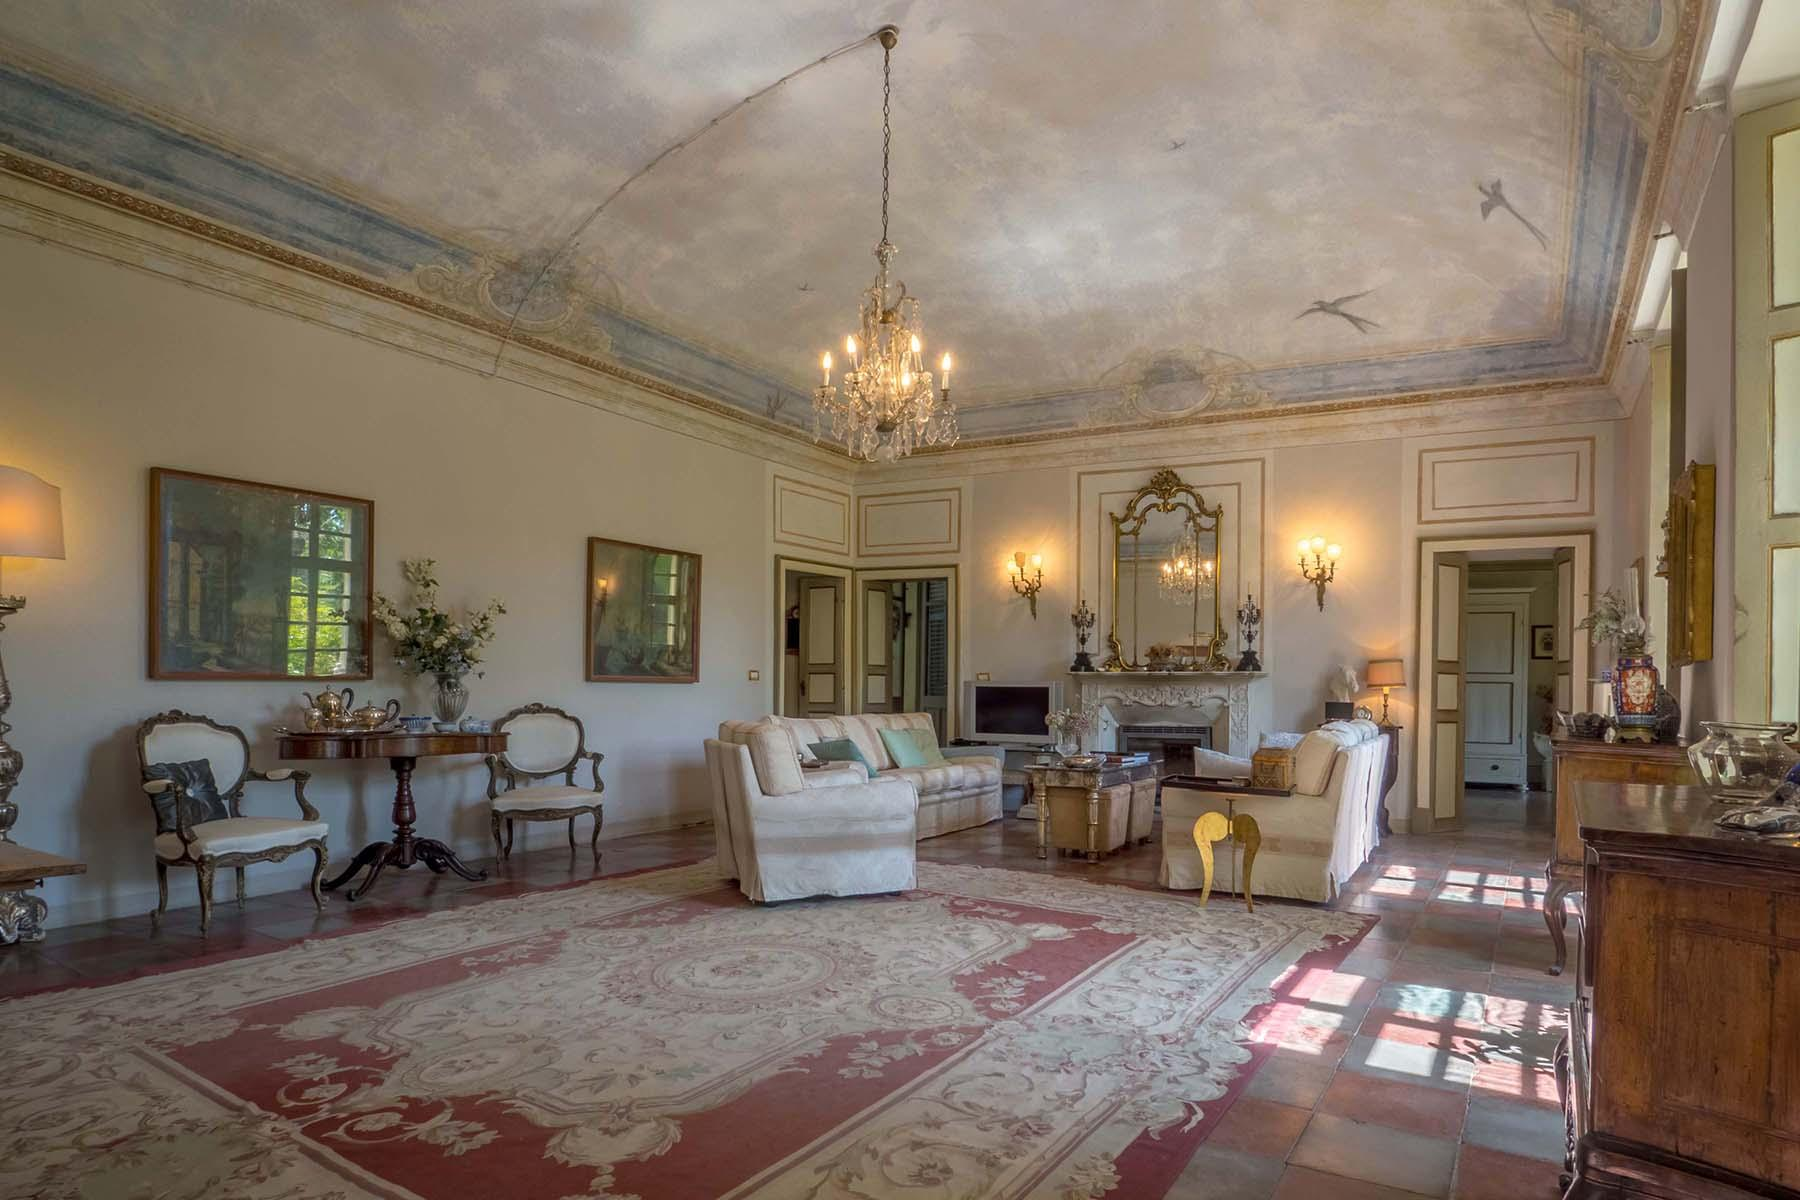 Enchanting historical villa in the heart of the Monferrato region - 2